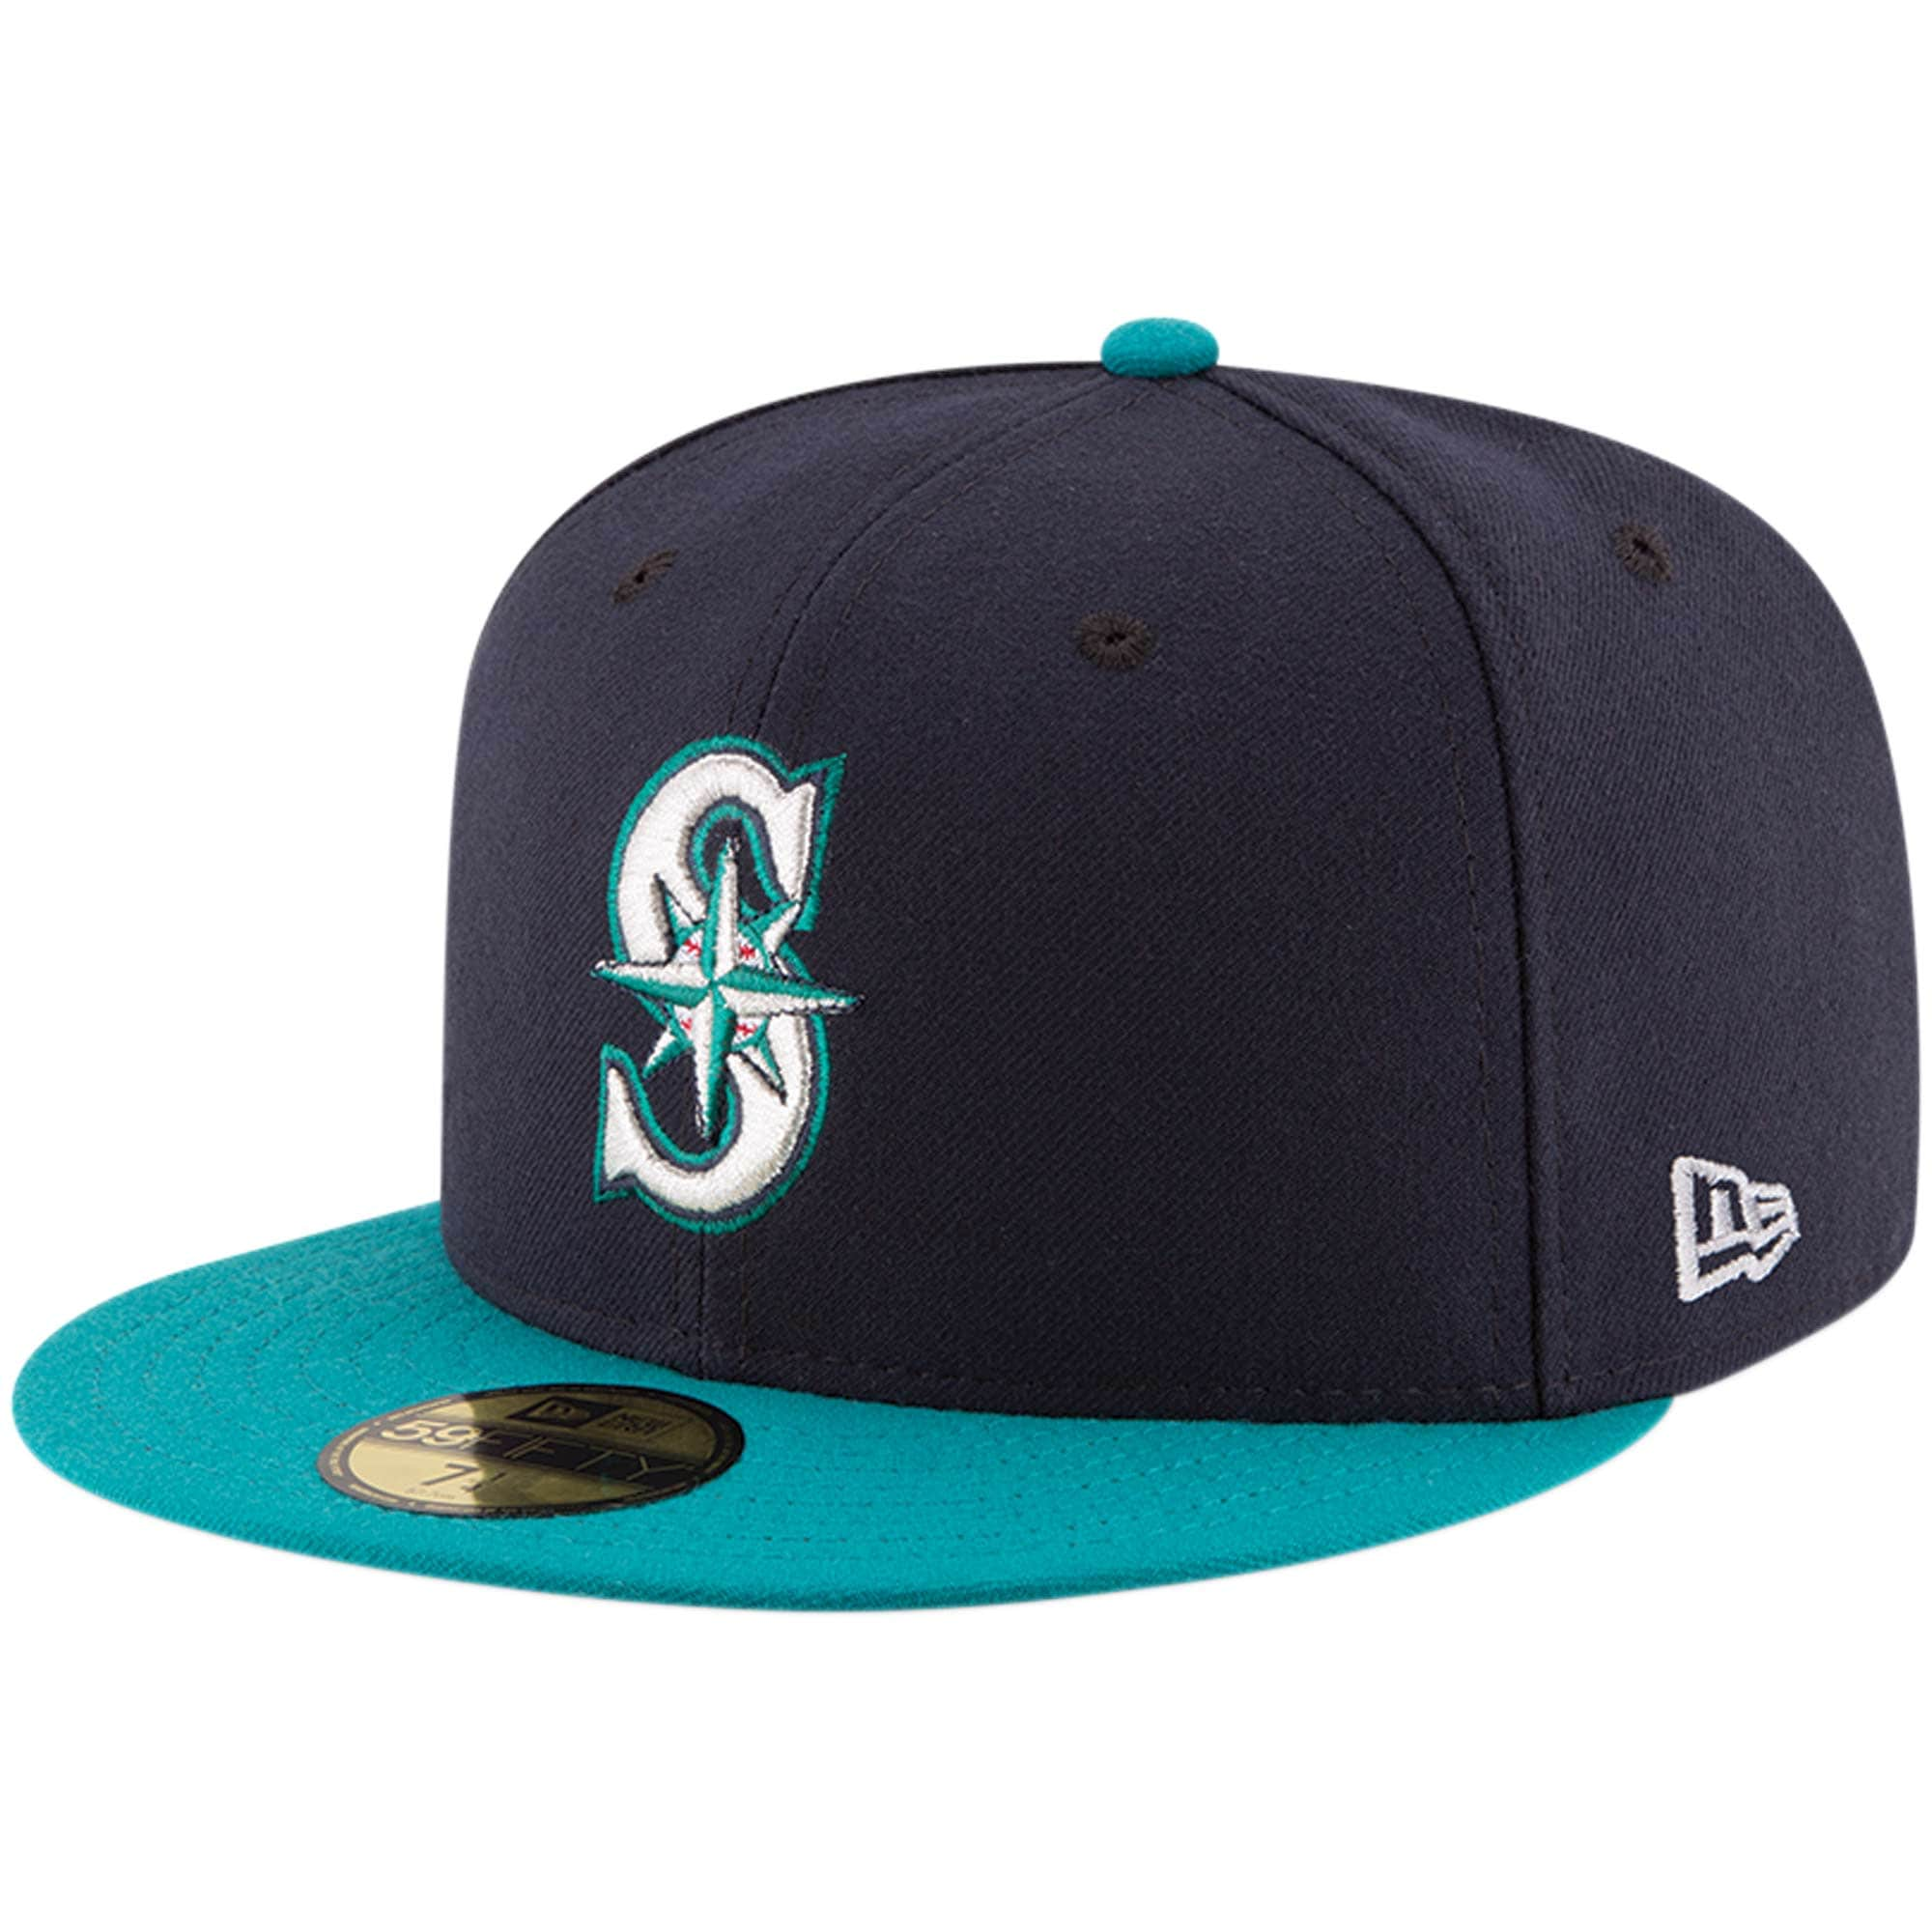 Seattle Mariners New Era Youth Authentic Collection On-Field Alternate 59FIFTY Fitted Hat - Navy/Aqua